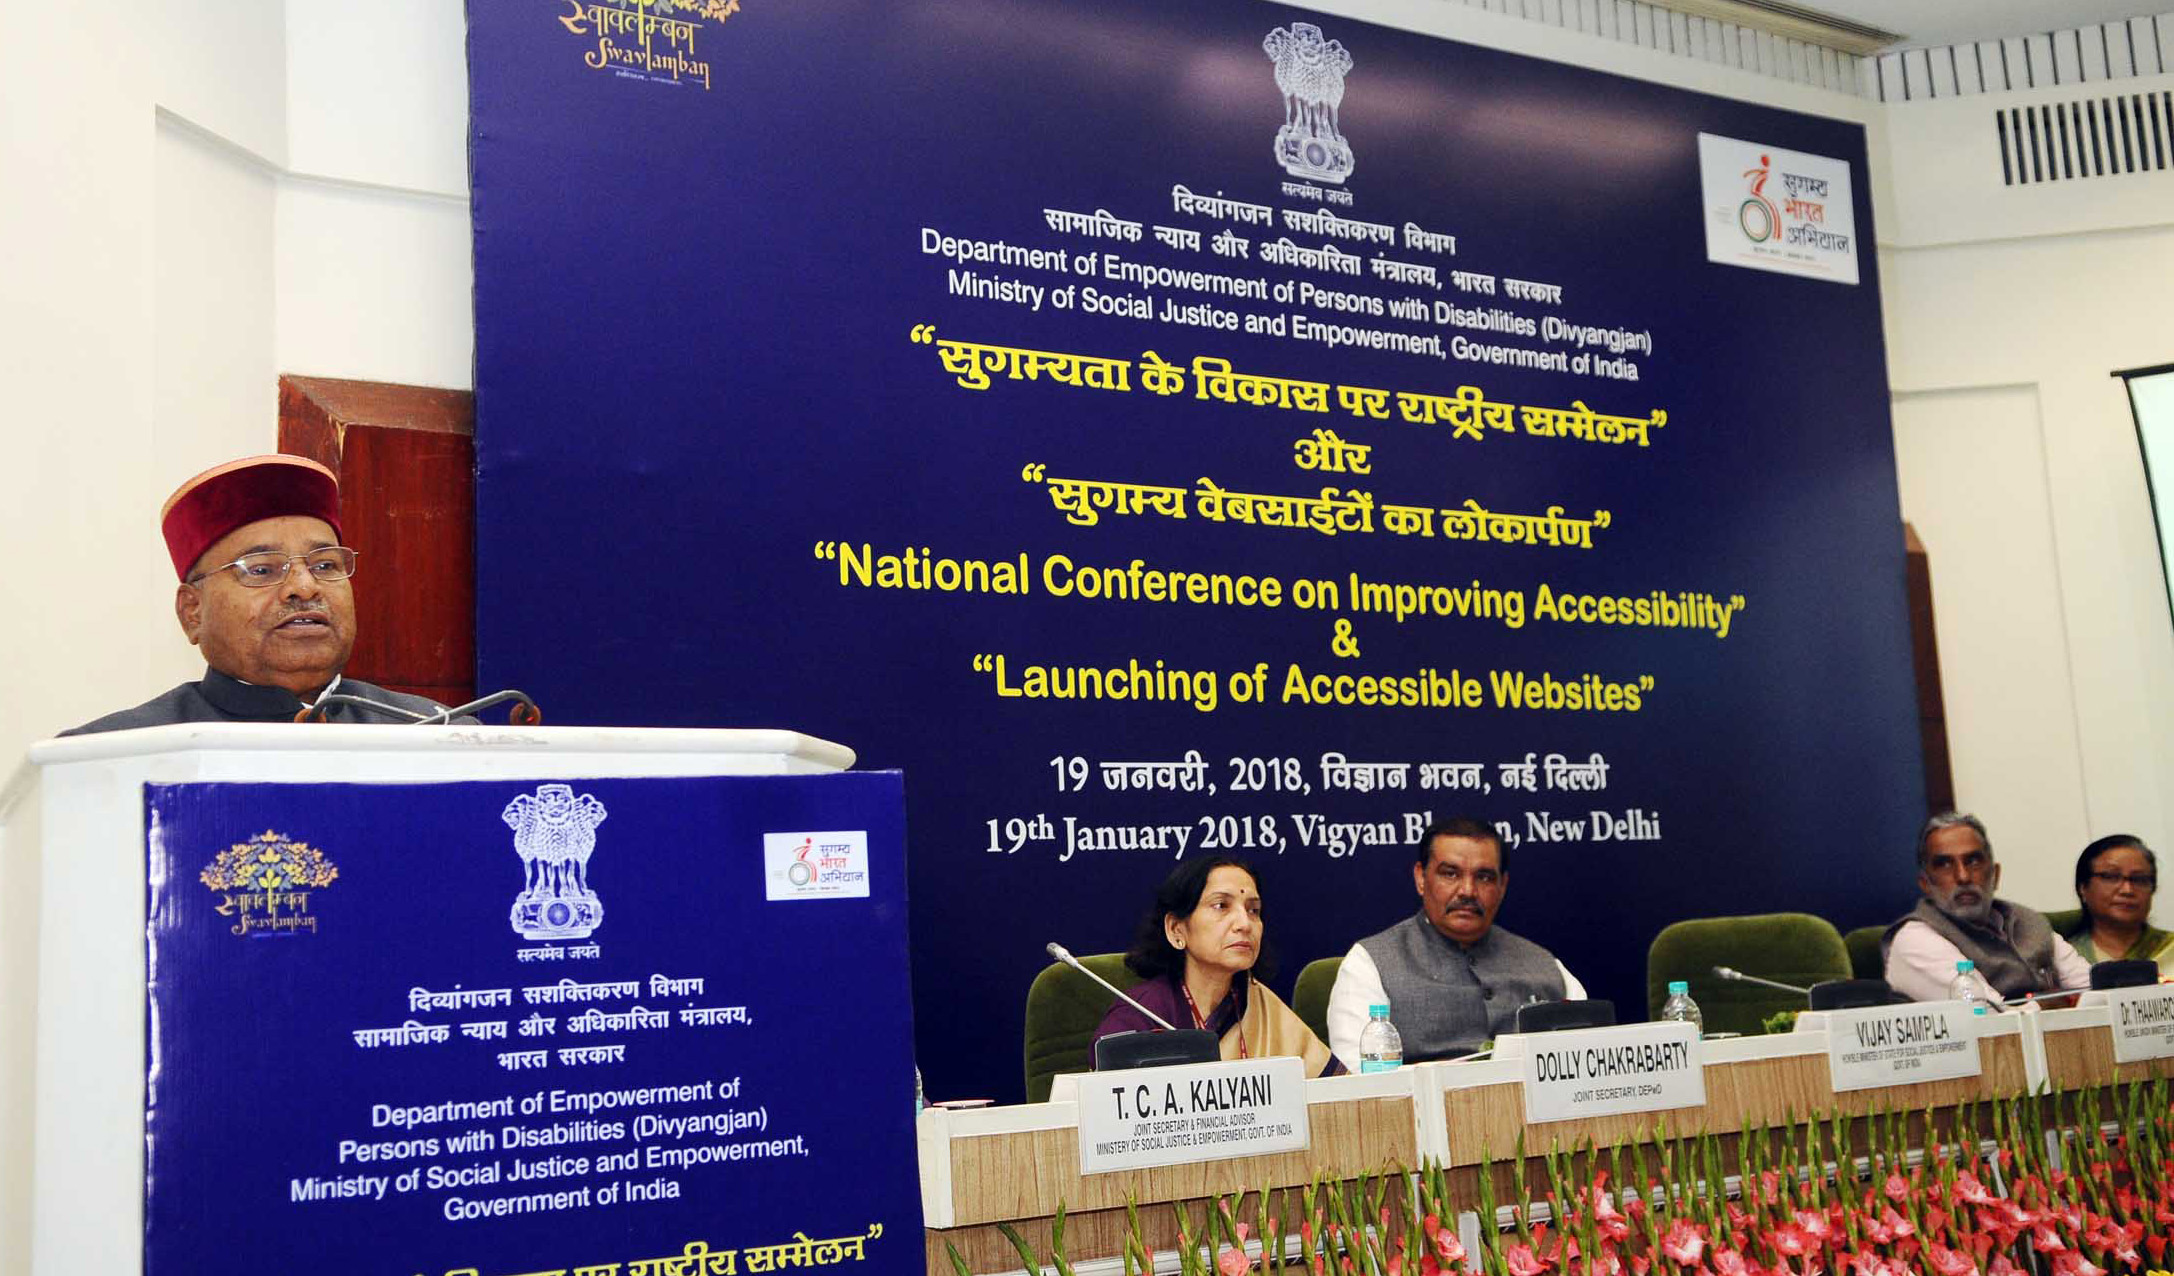 The Union Minister for Social Justice and Empowerment, Shri Thaawar Chand Gehlot addressing at the inauguration of the 'National Conference on Improving Accessibility', organised by the Department of Empowerment of Persons with Disabilities (Divyangjan), in New Delhi on January 19, 2018. The Ministers of State for Social Justice & Empowerment, Shri Vijay Sampla and Shri Krishan Pal are also pictured.